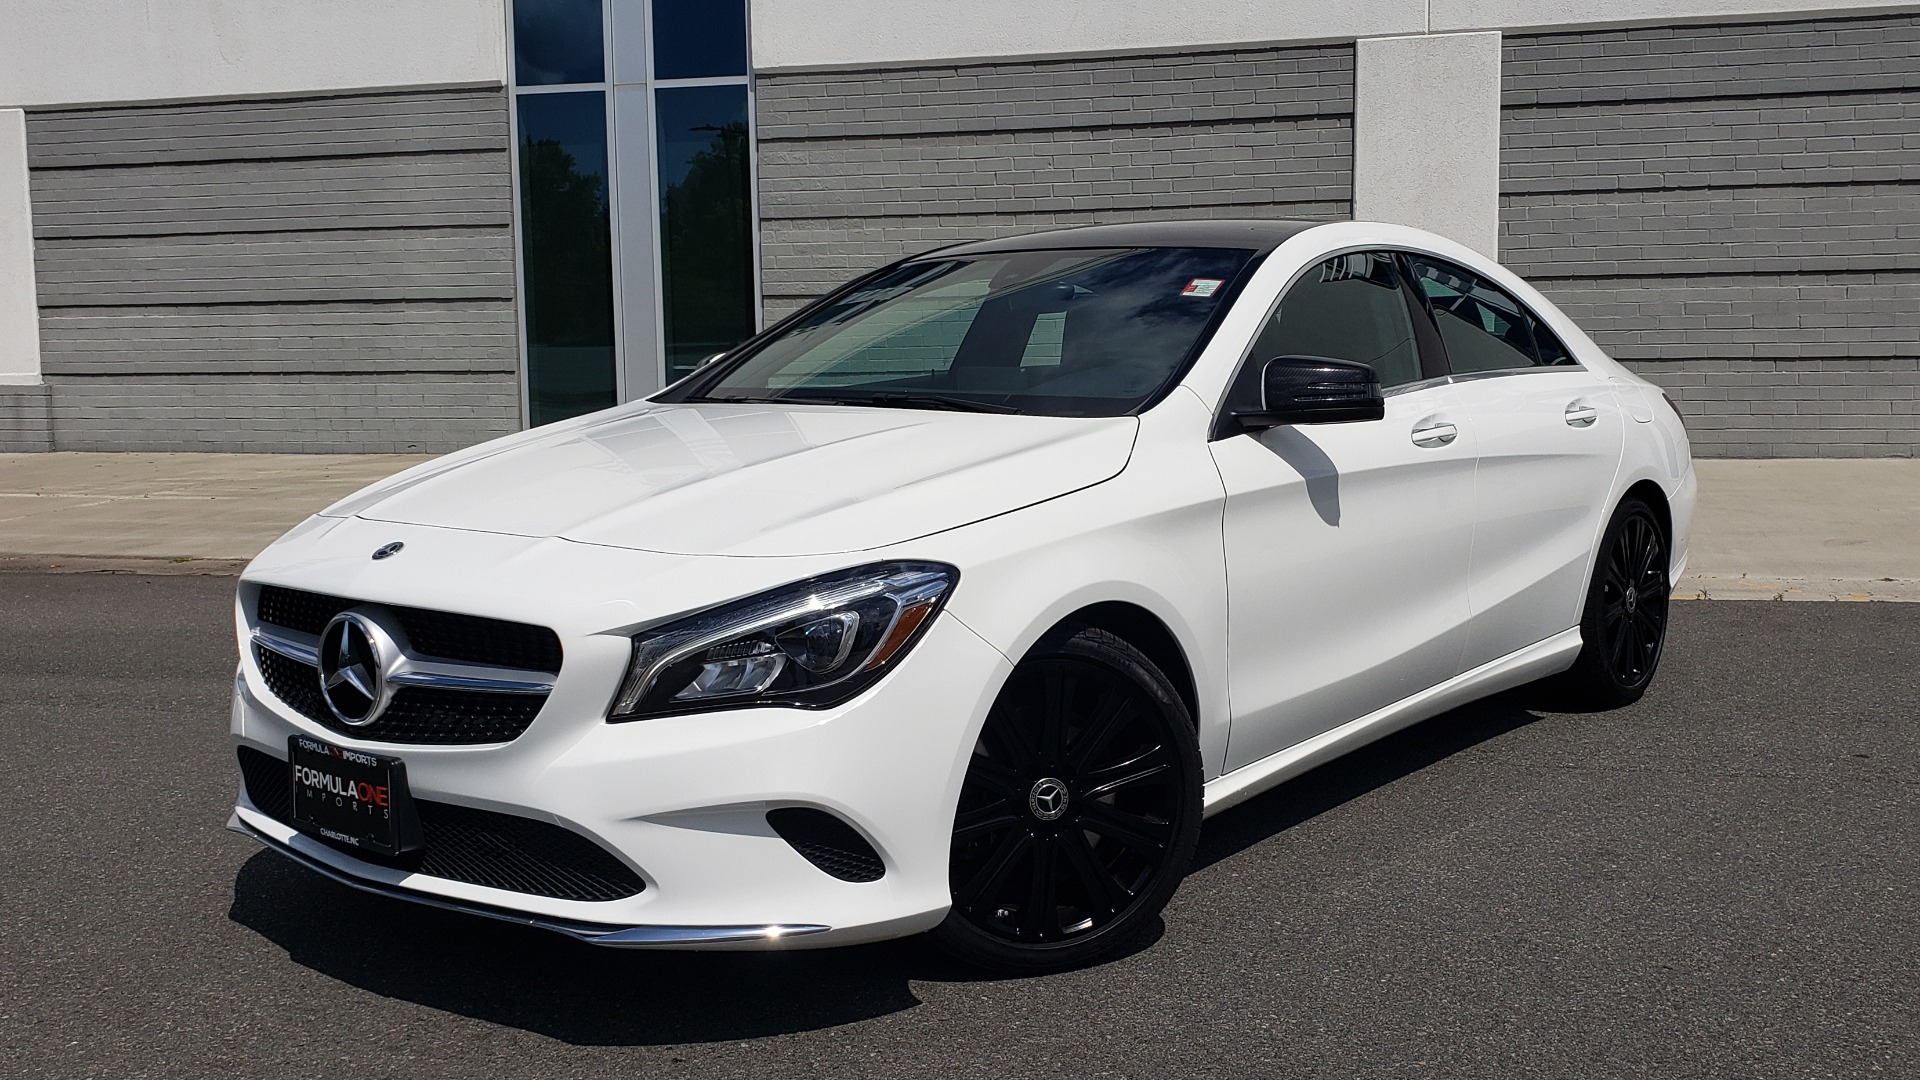 Used 2018 Mercedes-Benz CLA 250 4MATIC COUPE / PREMIUM / PANO-ROOF / APPLE / REARVIEW for sale Sold at Formula Imports in Charlotte NC 28227 1